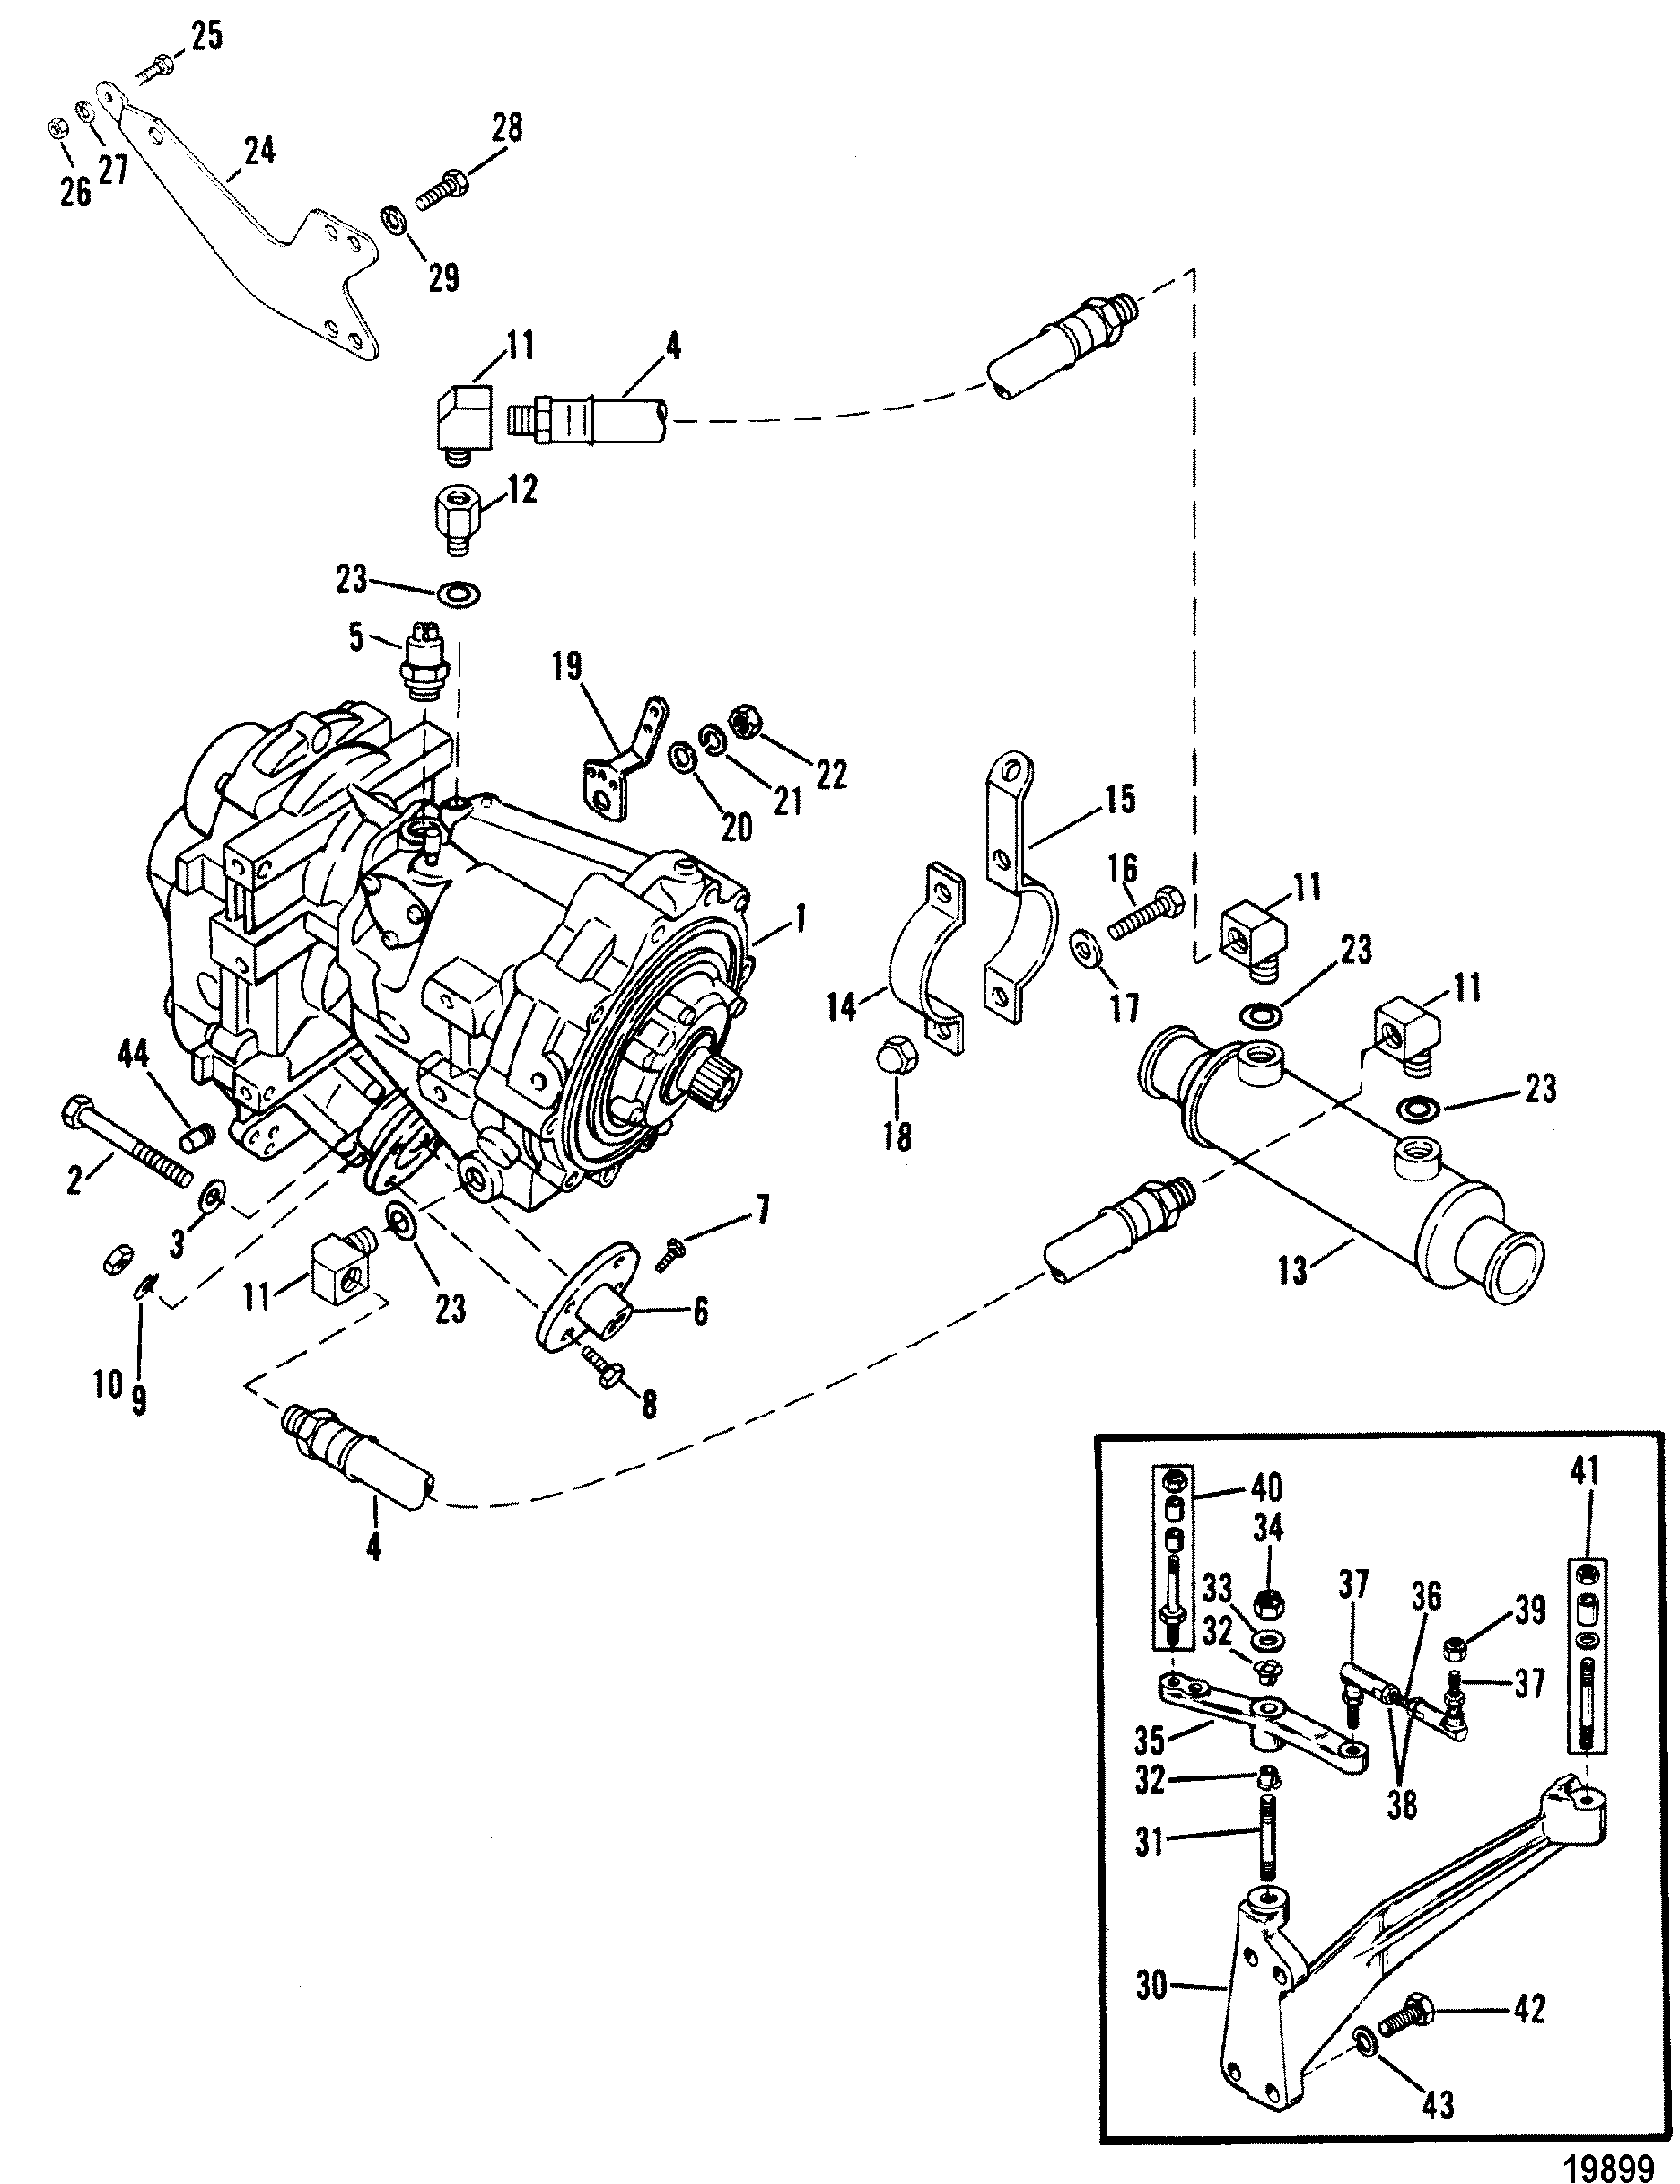 TRANSMISSION AND RELATED PARTS V-DRIVE FOR MERCRUISER